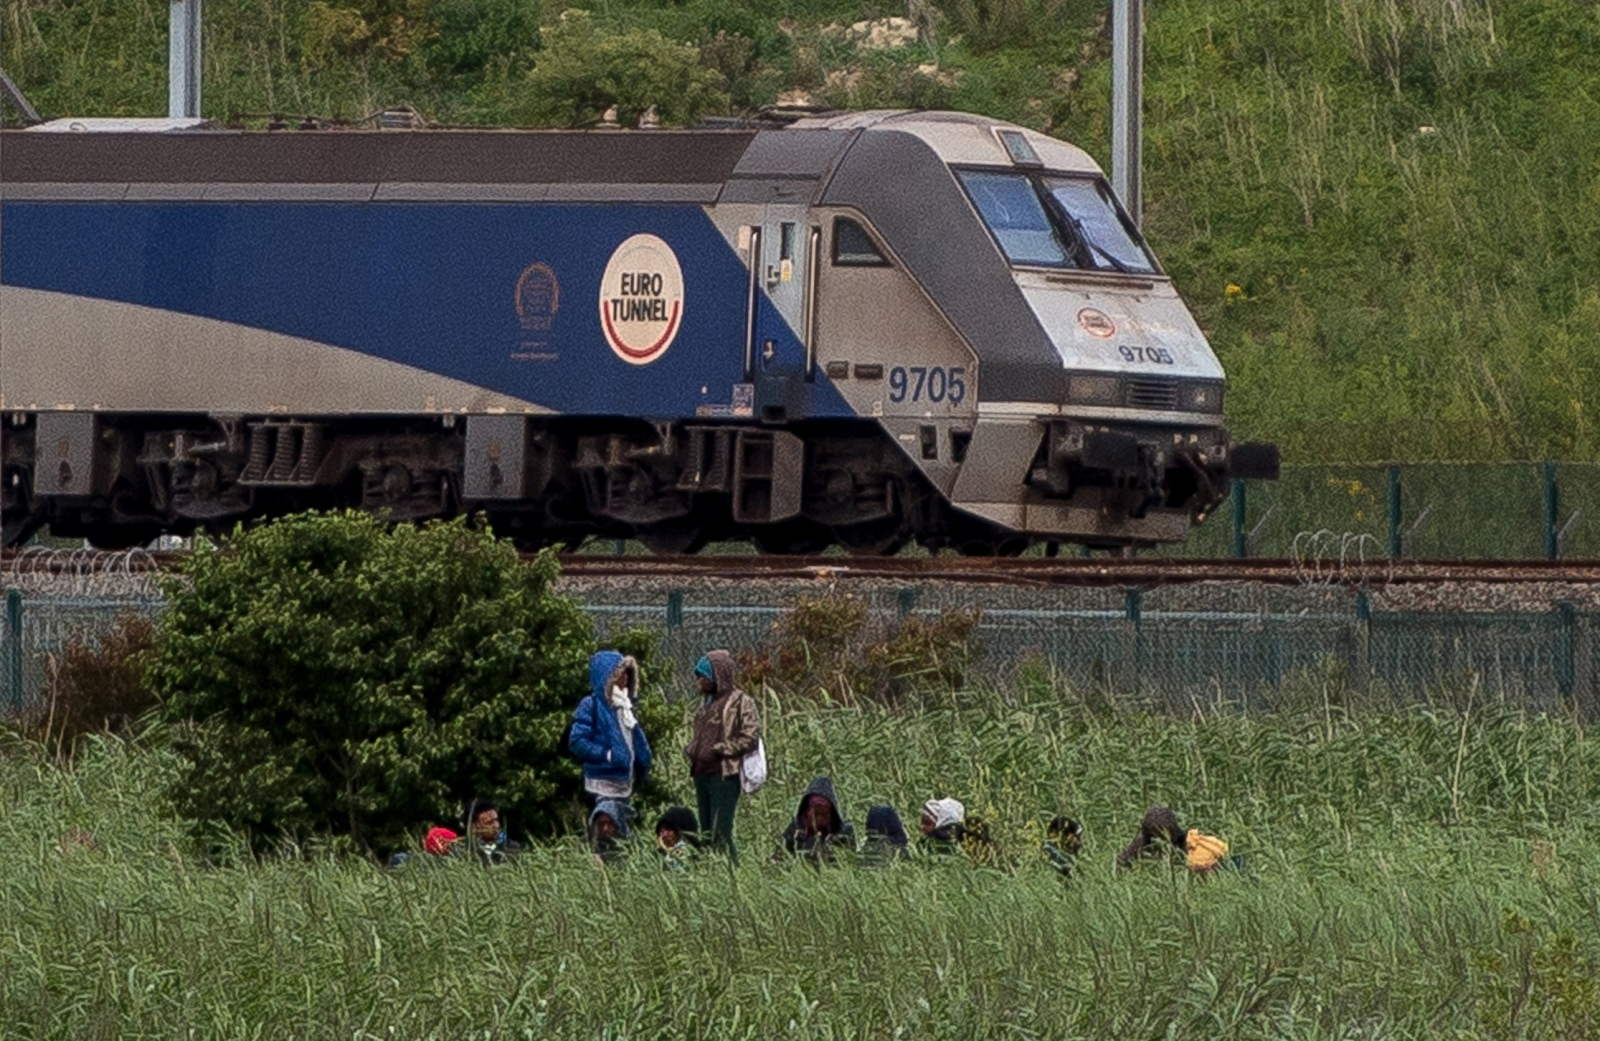 Calais migrants by Eurotunnel train